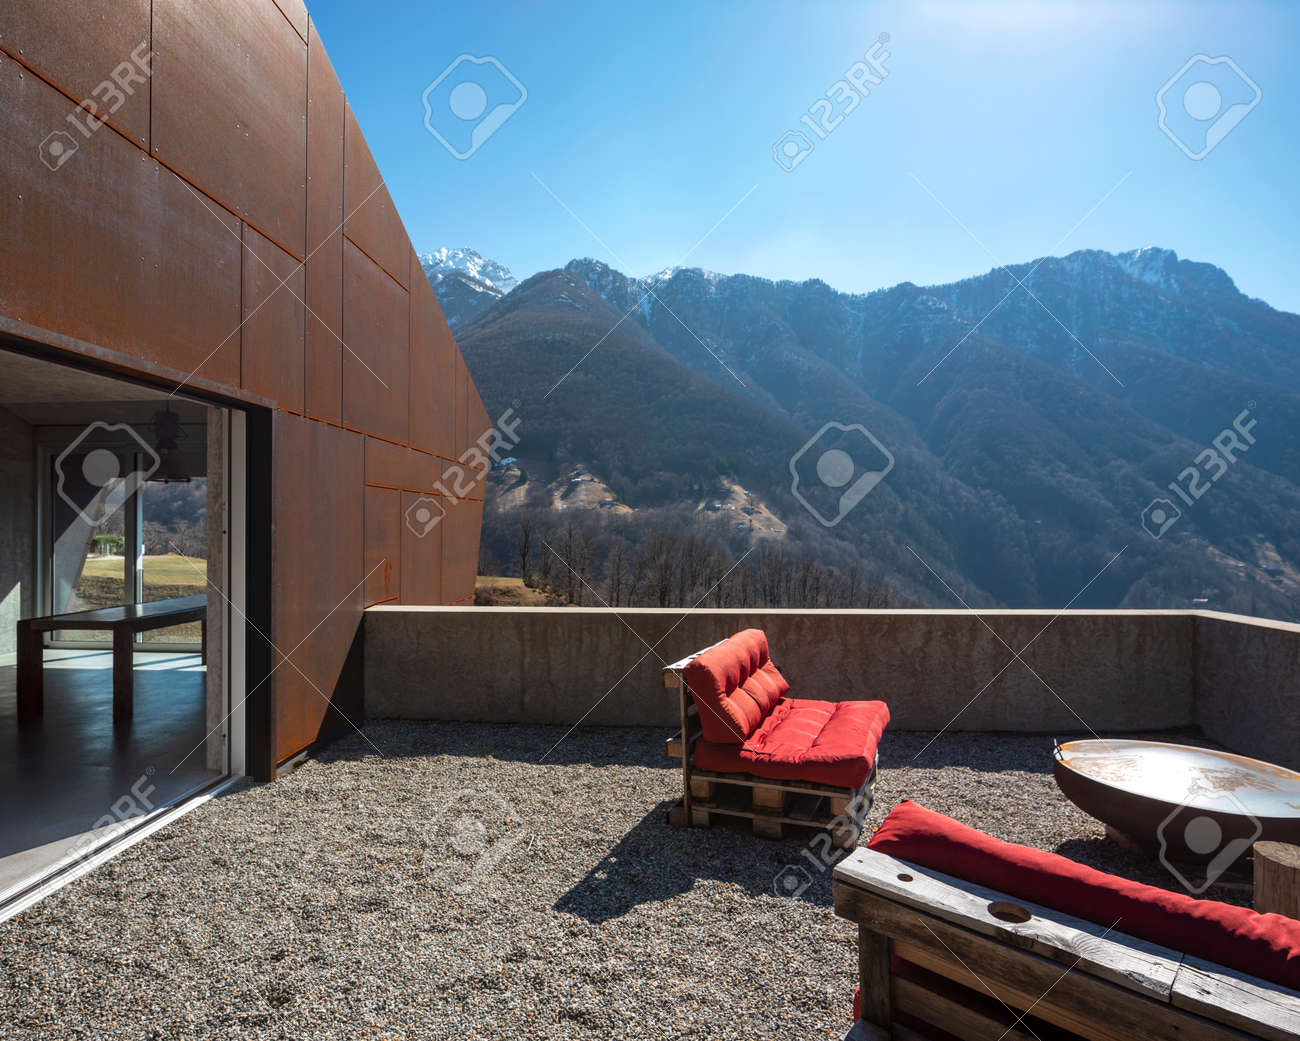 Modern house exteriors with veranda. Red sofa overlooking the mountains of Switzerland. Concept, nobody inside - 166417754